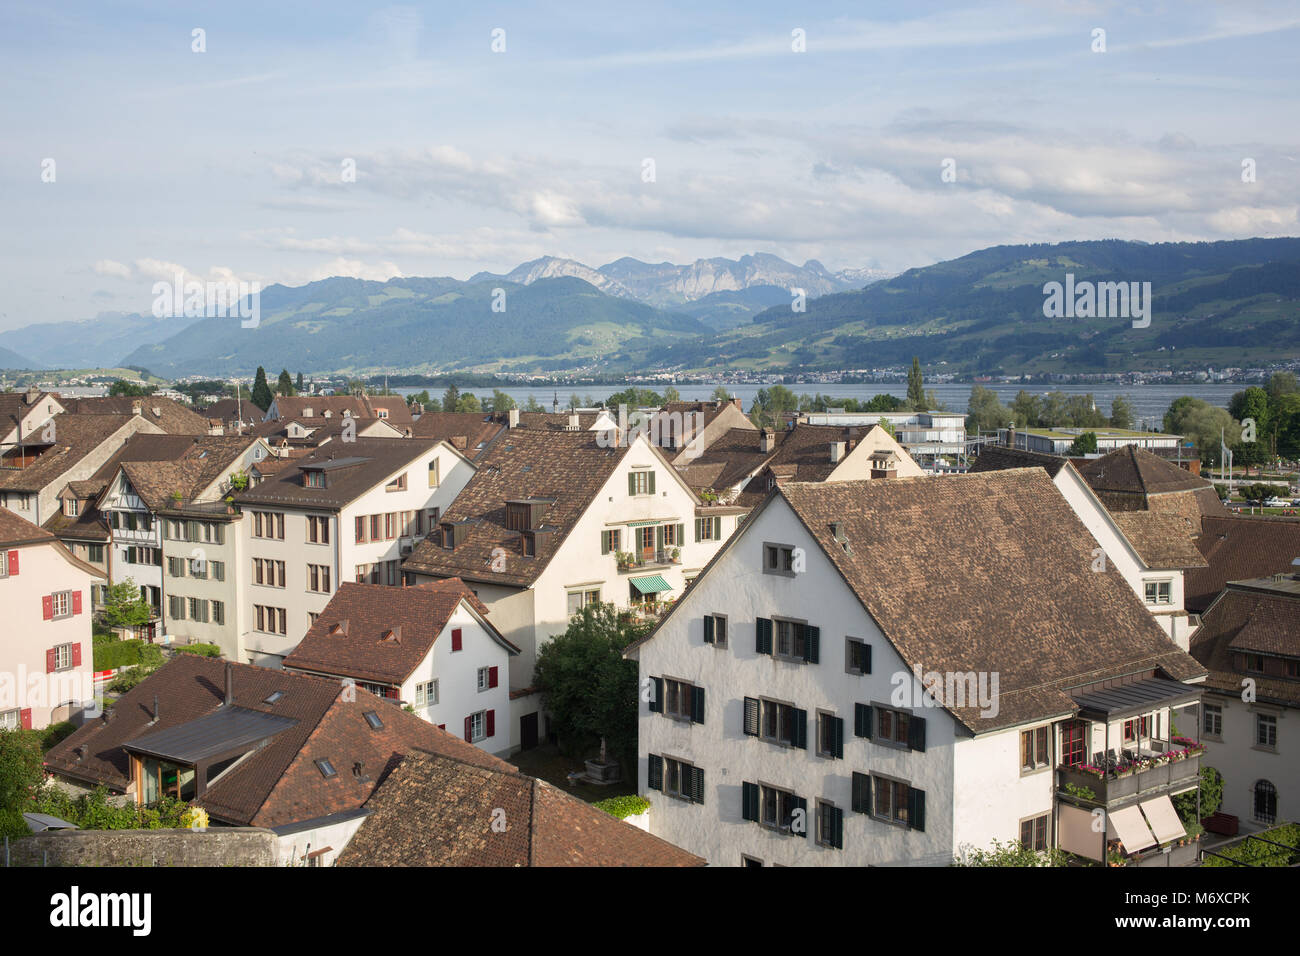 Natural landscape in Switzerland, german part - Stock Image